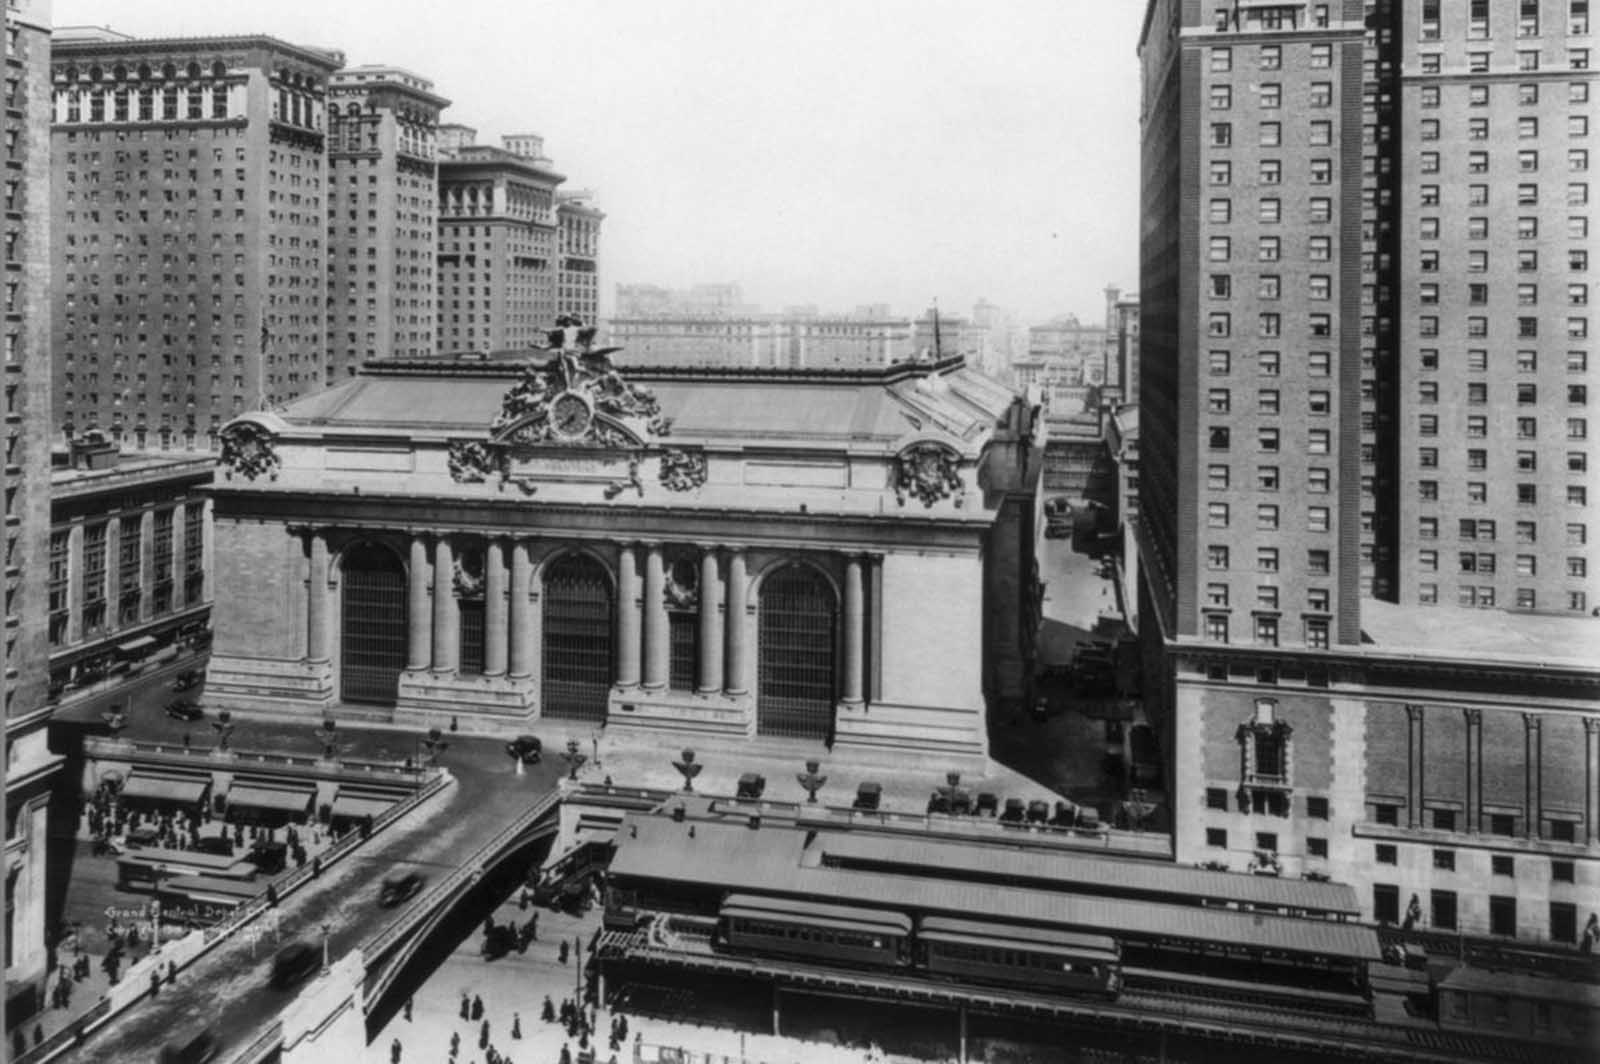 Grand Central Terminal, at Vanderbilt Ave and 42nd St., ca 1919.